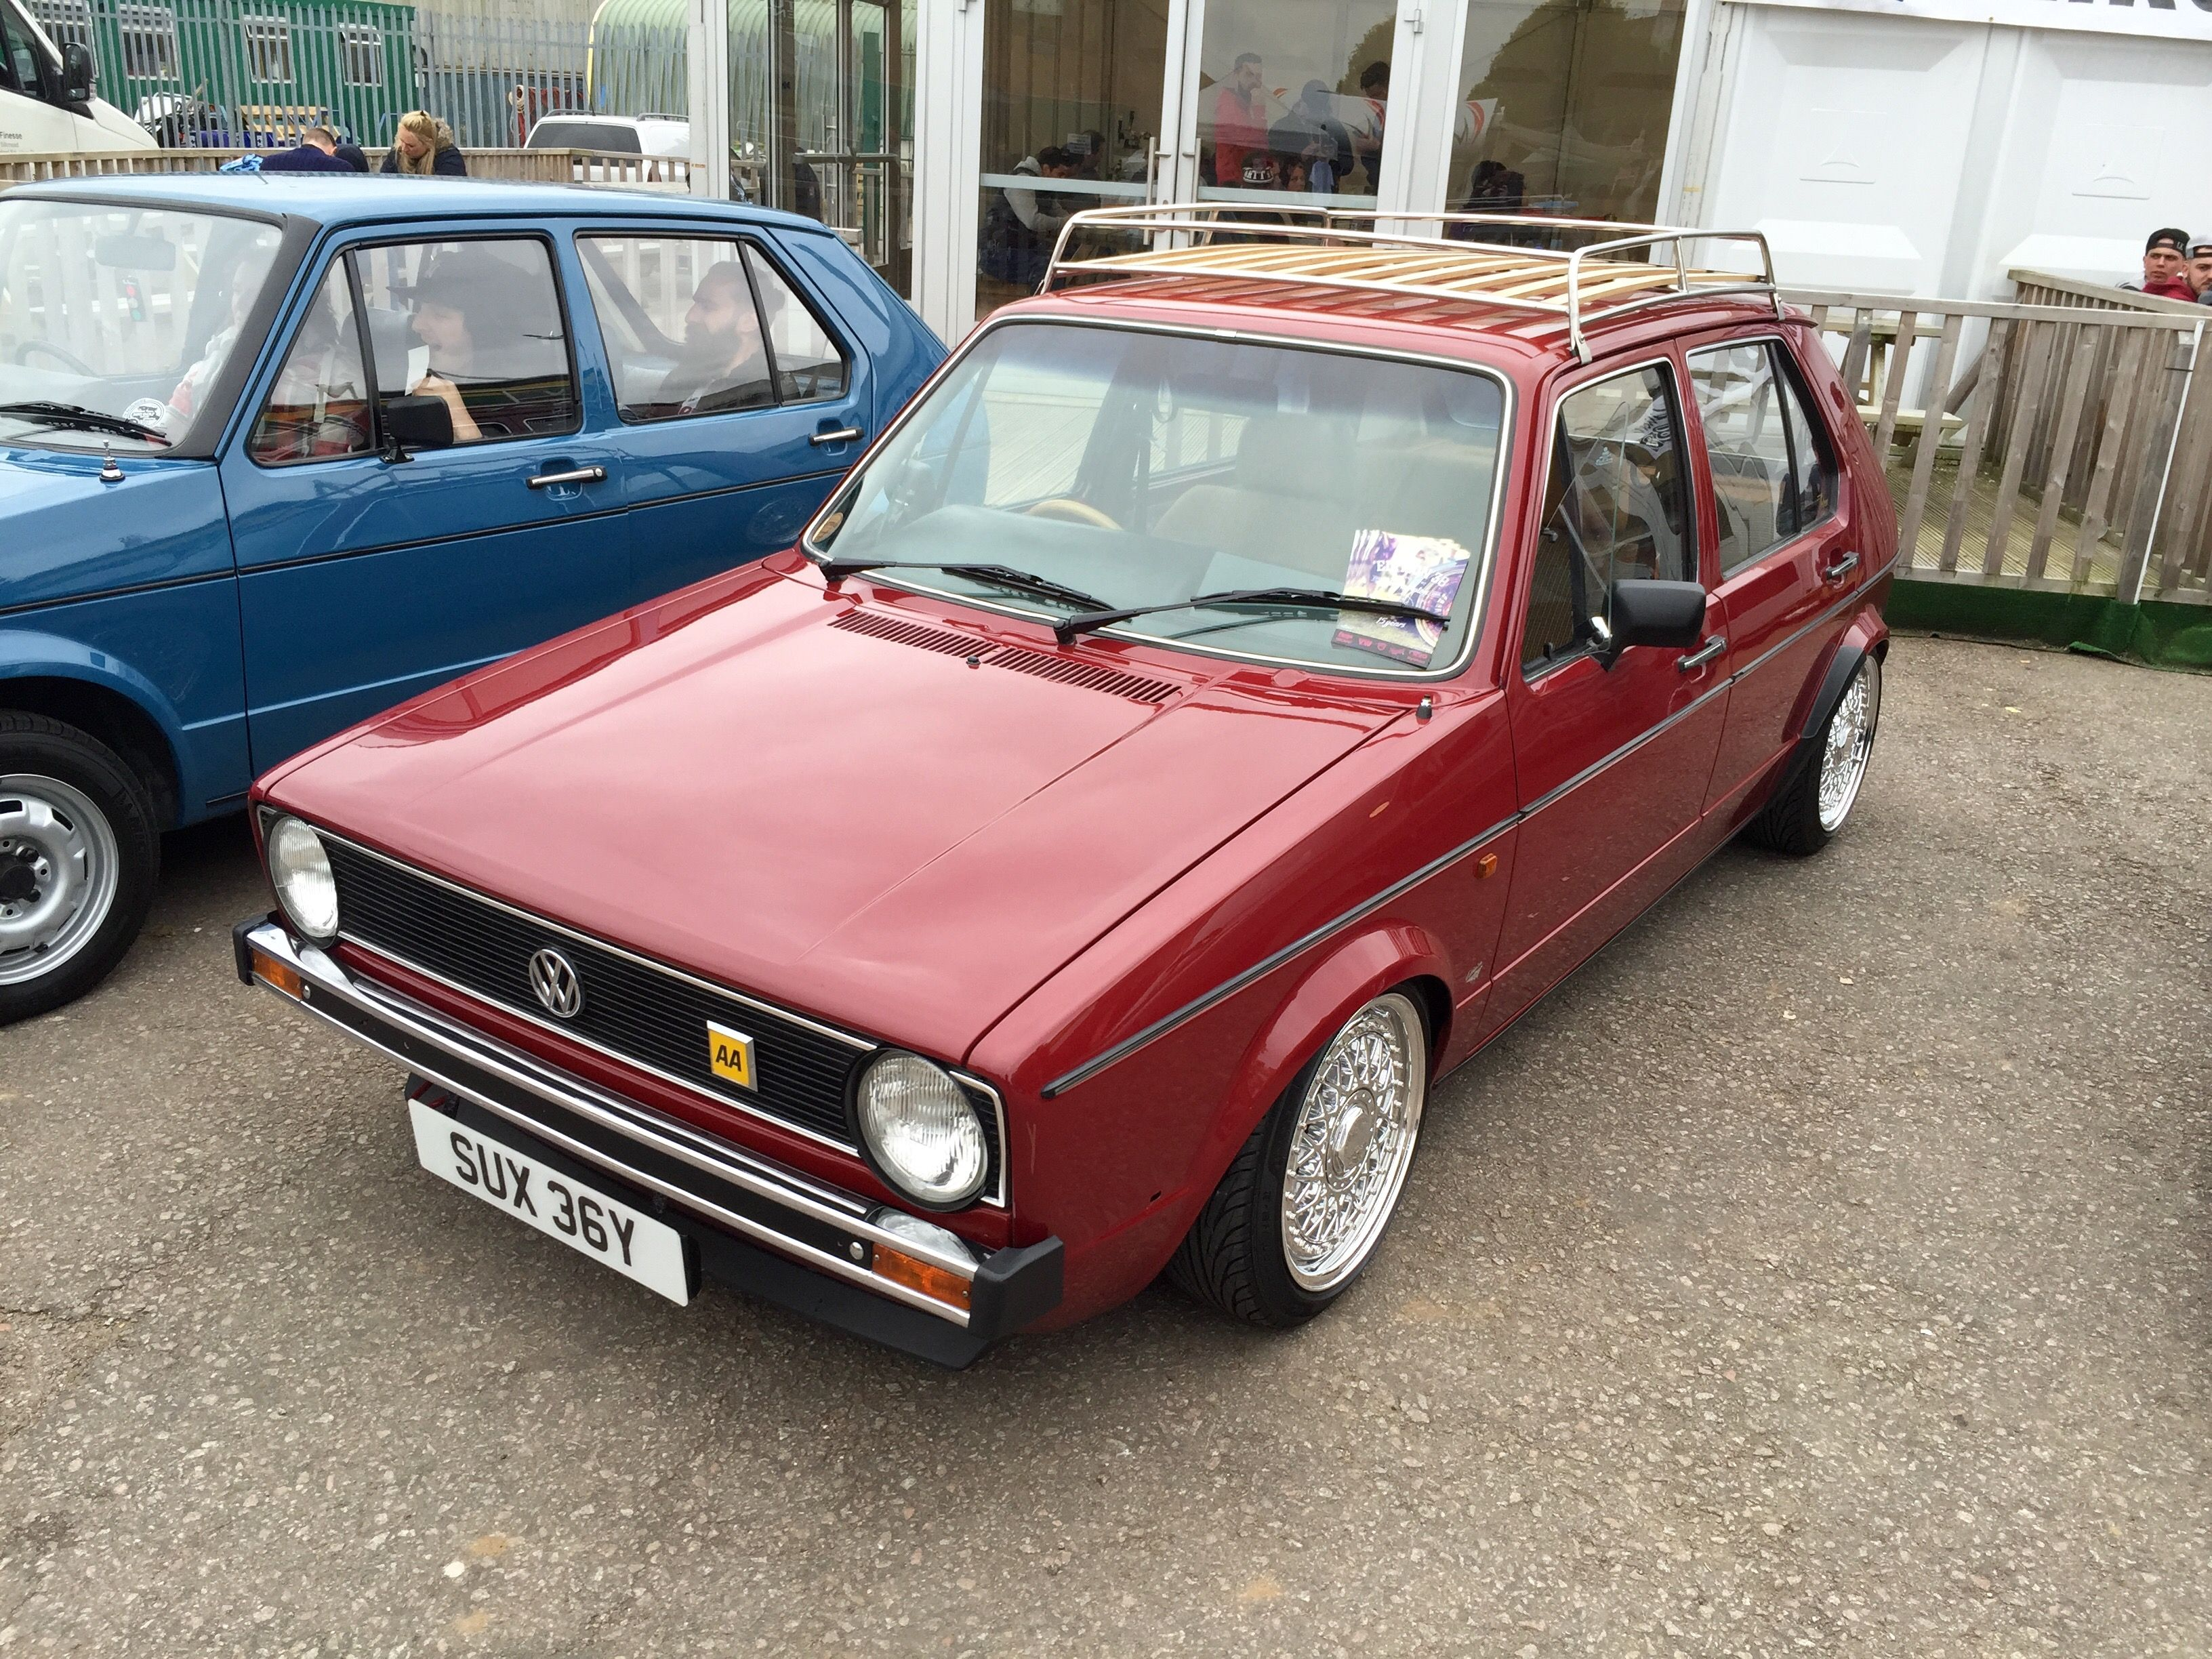 Mk1 At Early Edition 2015 The Roof Rack Is Nice Touch Roof Rack Mk1 Vw Golf